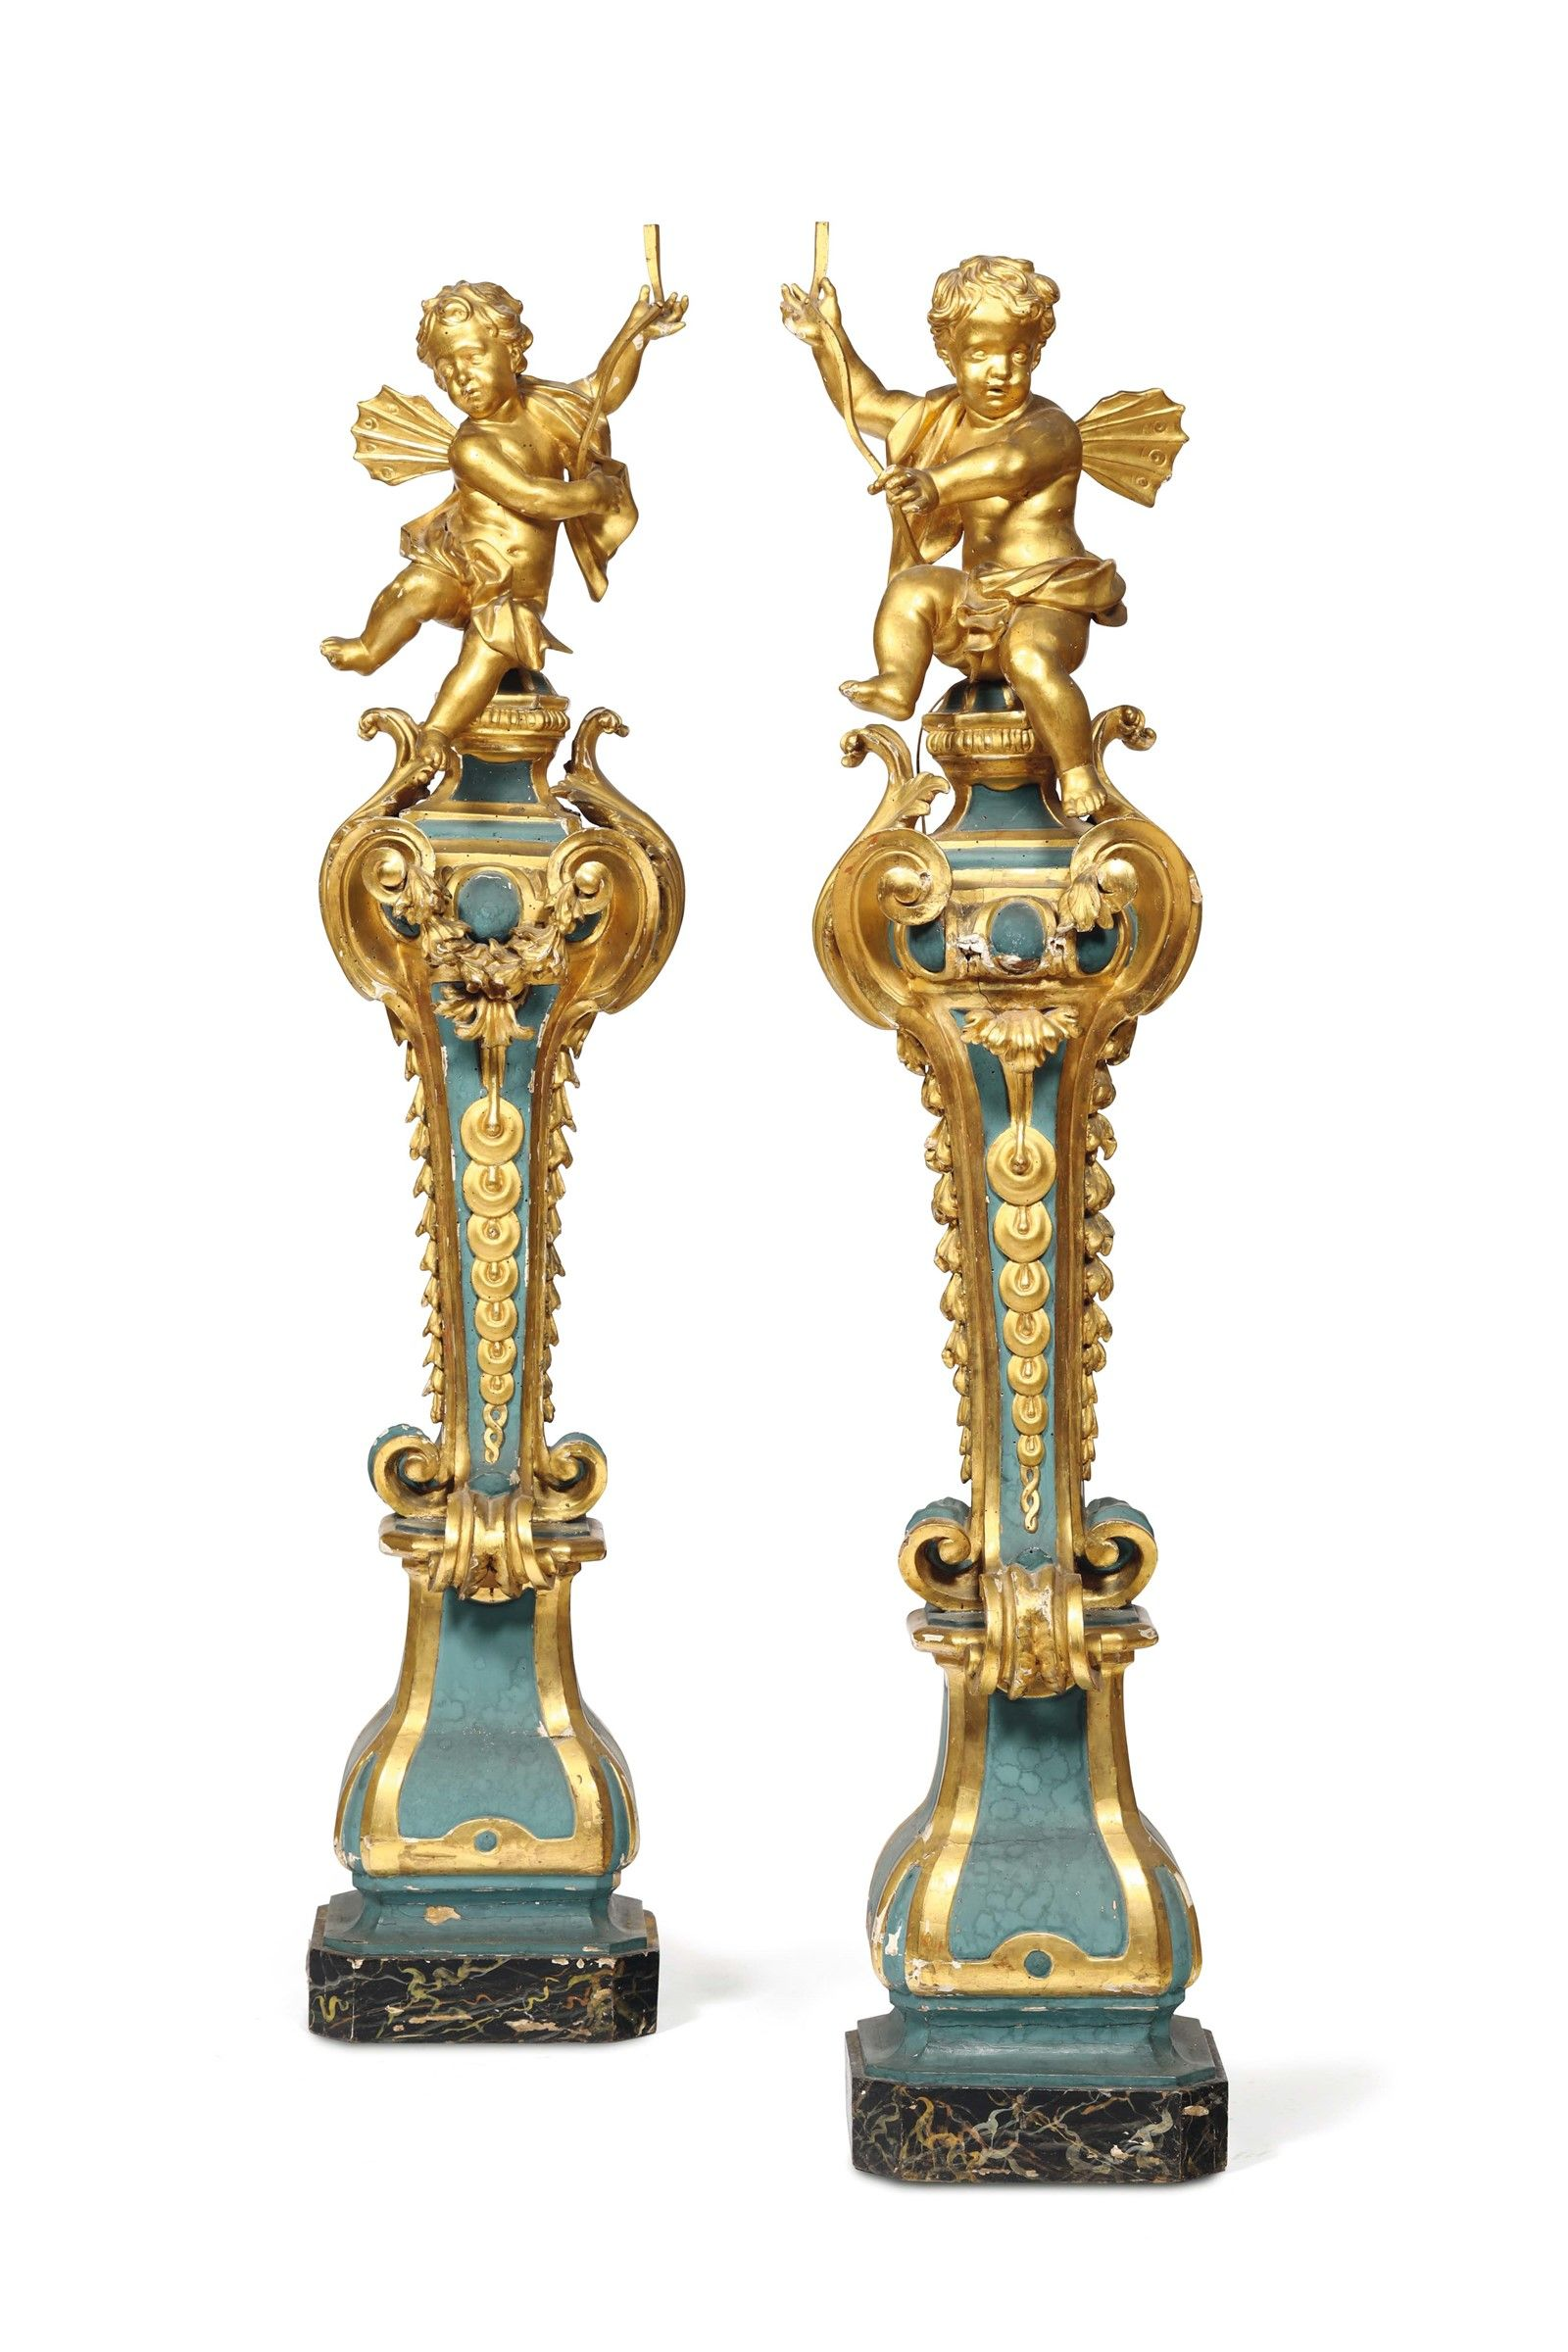 Pair Of Carved Decorative Pedestals Supporting A Cherub